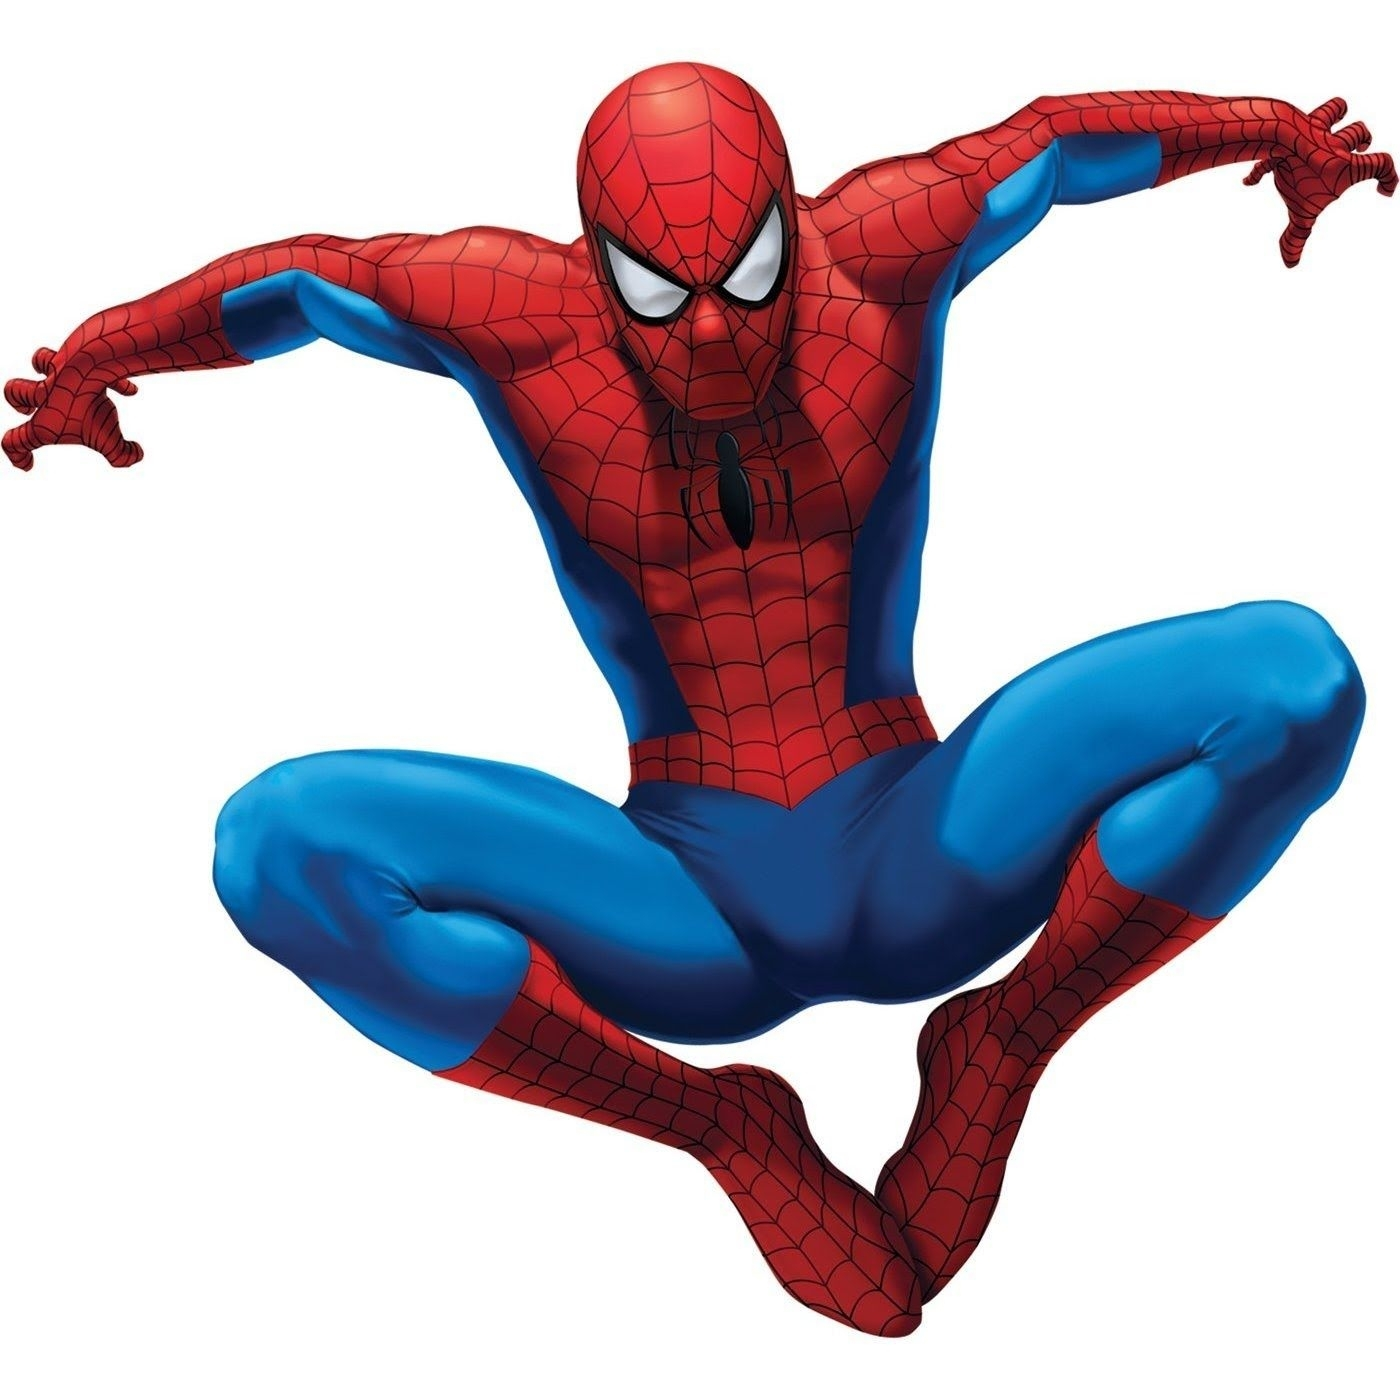 spiderman cartoon - clipart best | spiderman | pinterest